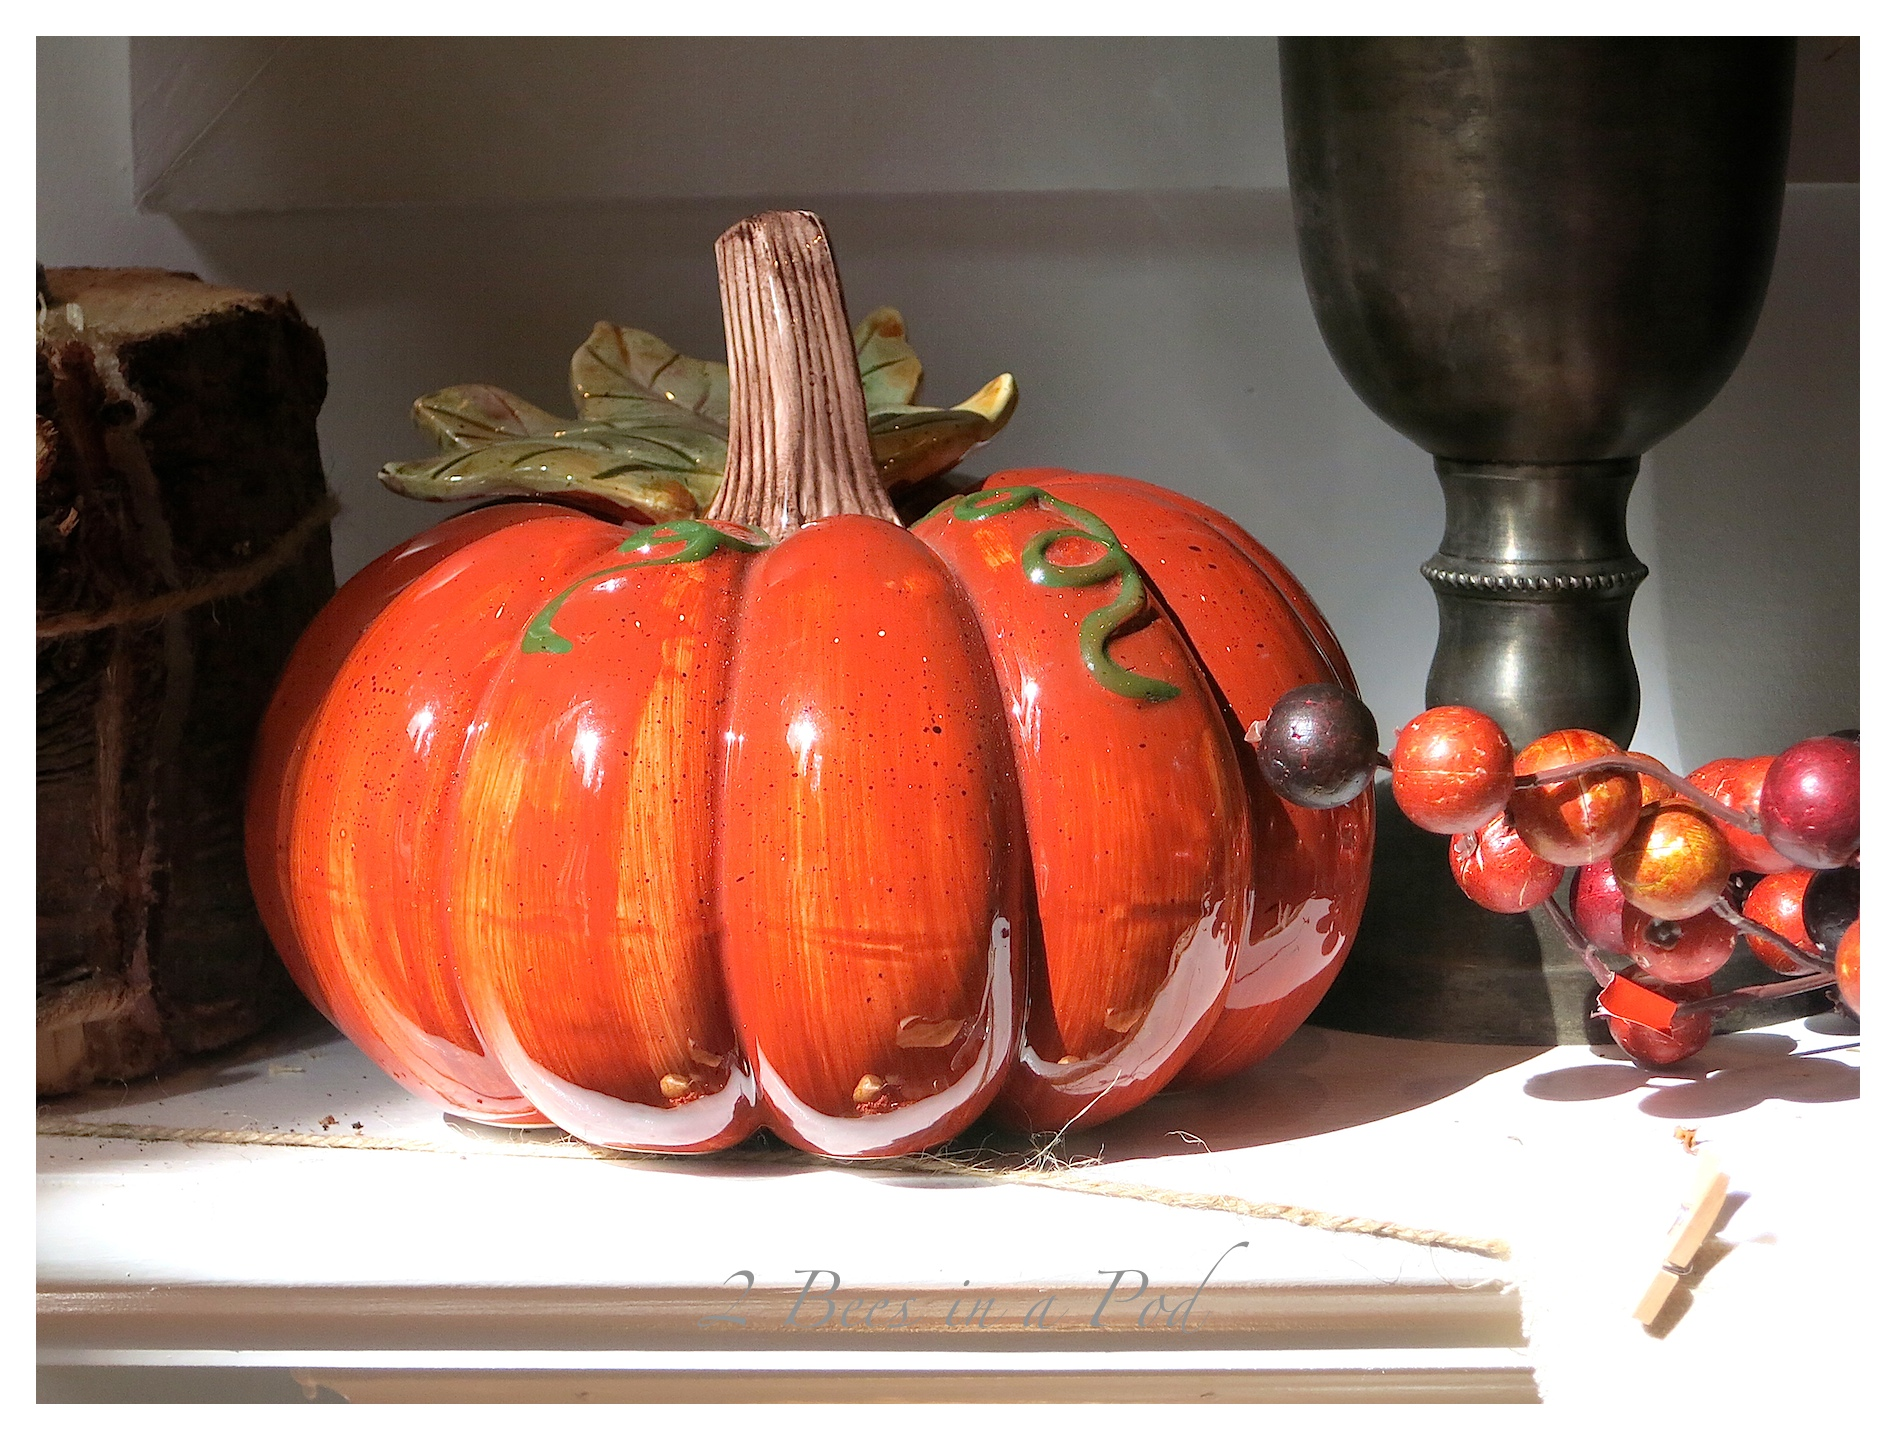 Fall Mantle Decor...Bloggers Fall Tour.  Mantle decorated with vintage and rustic items. Muted colors for Fall. Natural gourds, vintage trophies and loving cup, vintage suitcase, vintage wicker wine bottle, rustic ladders.